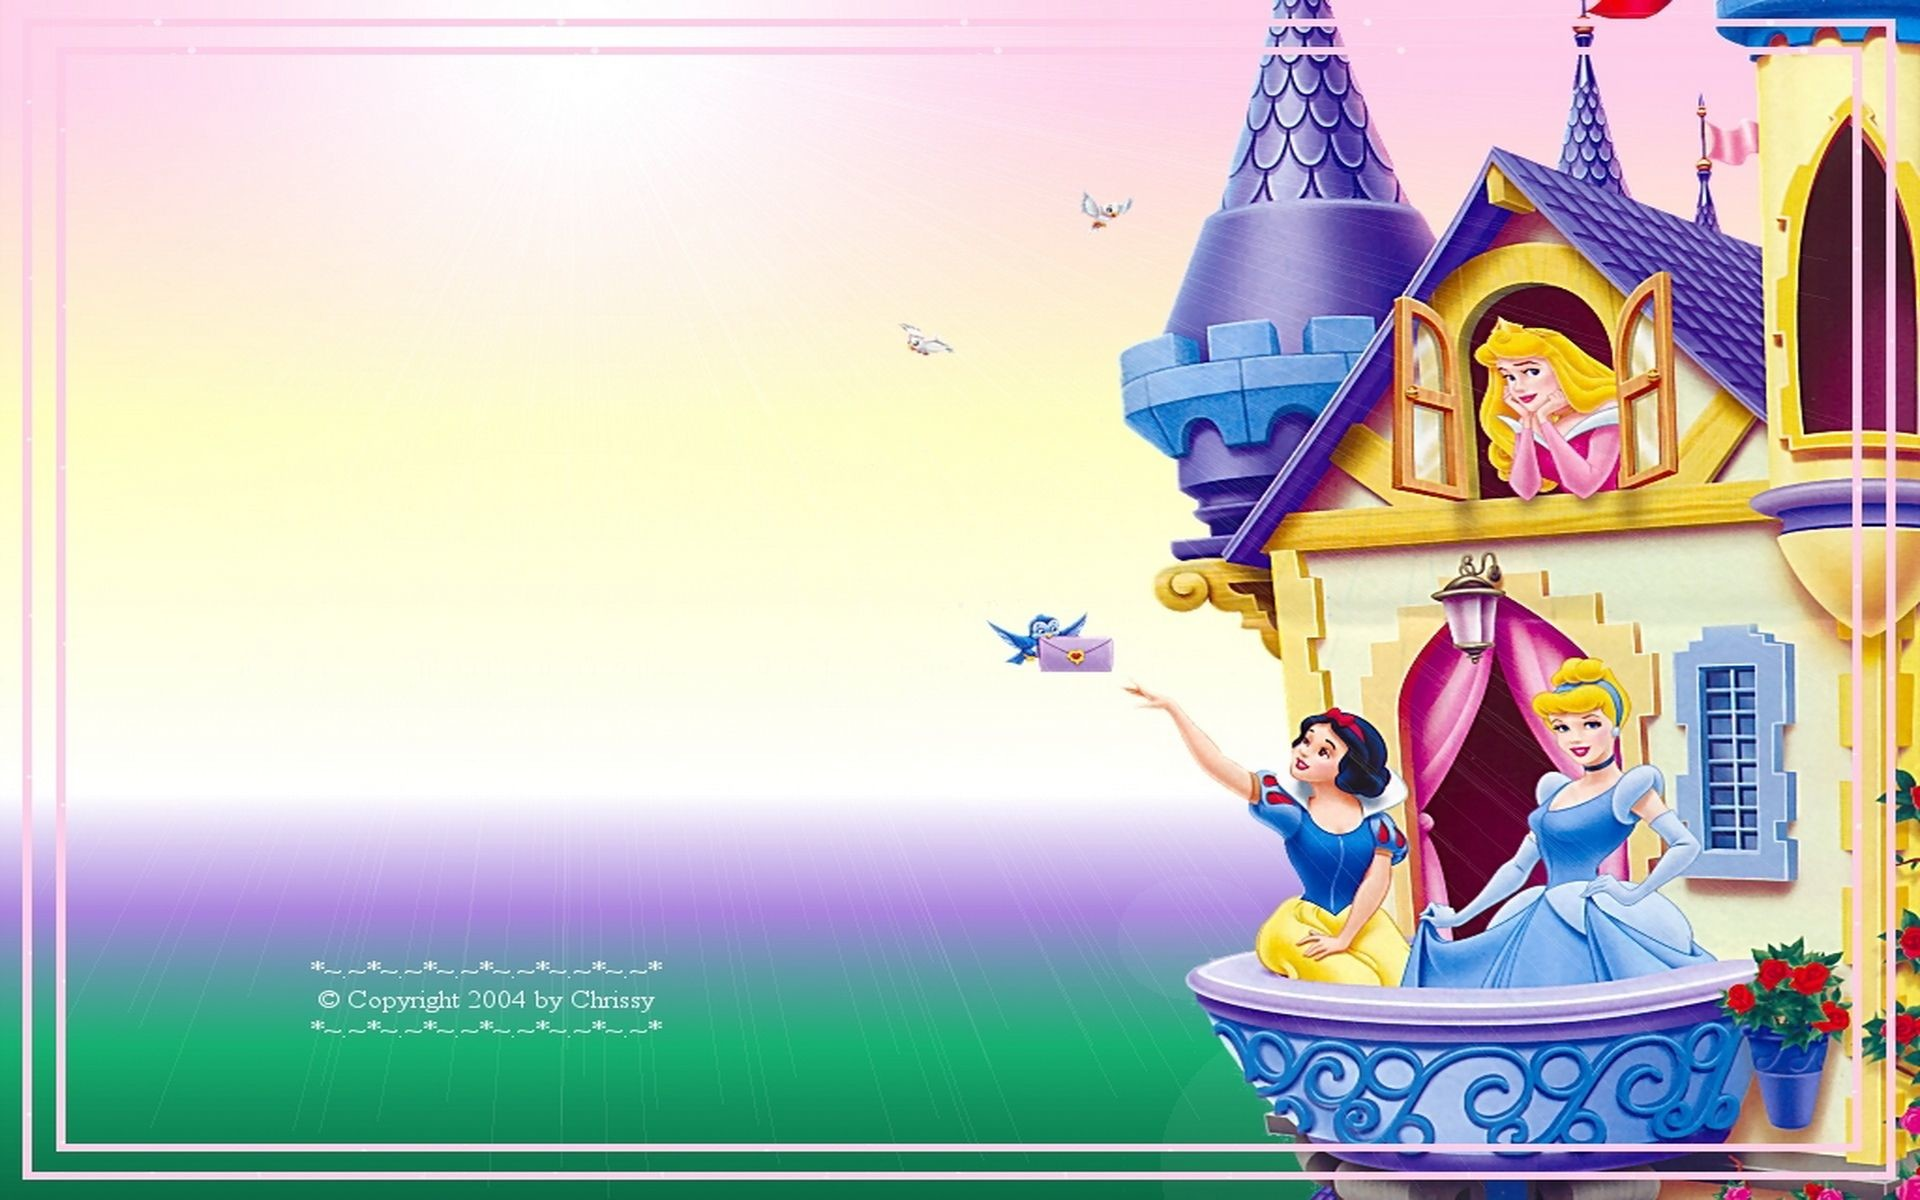 Res: 1920x1200, Disney Princess Background Wallpapers HD Wallpapers Pop 1920×1200 Princess  Images Wallpapers (54 Wallpapers